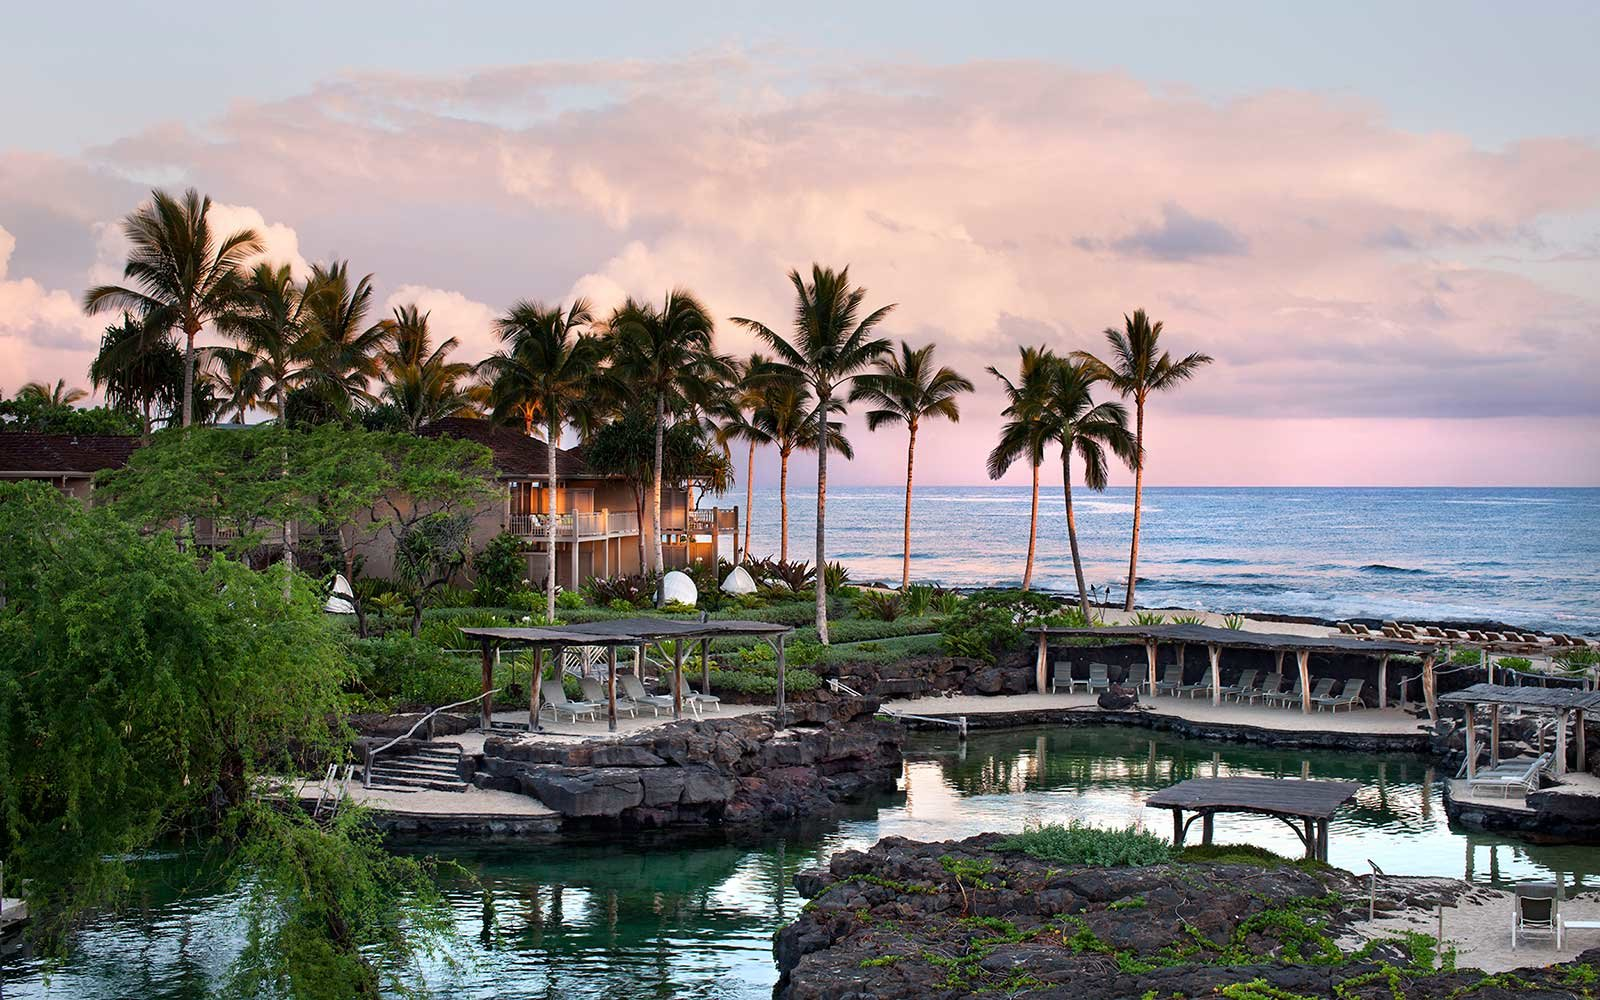 Four Seasons Resort Hualalai Hotel in Hawaii